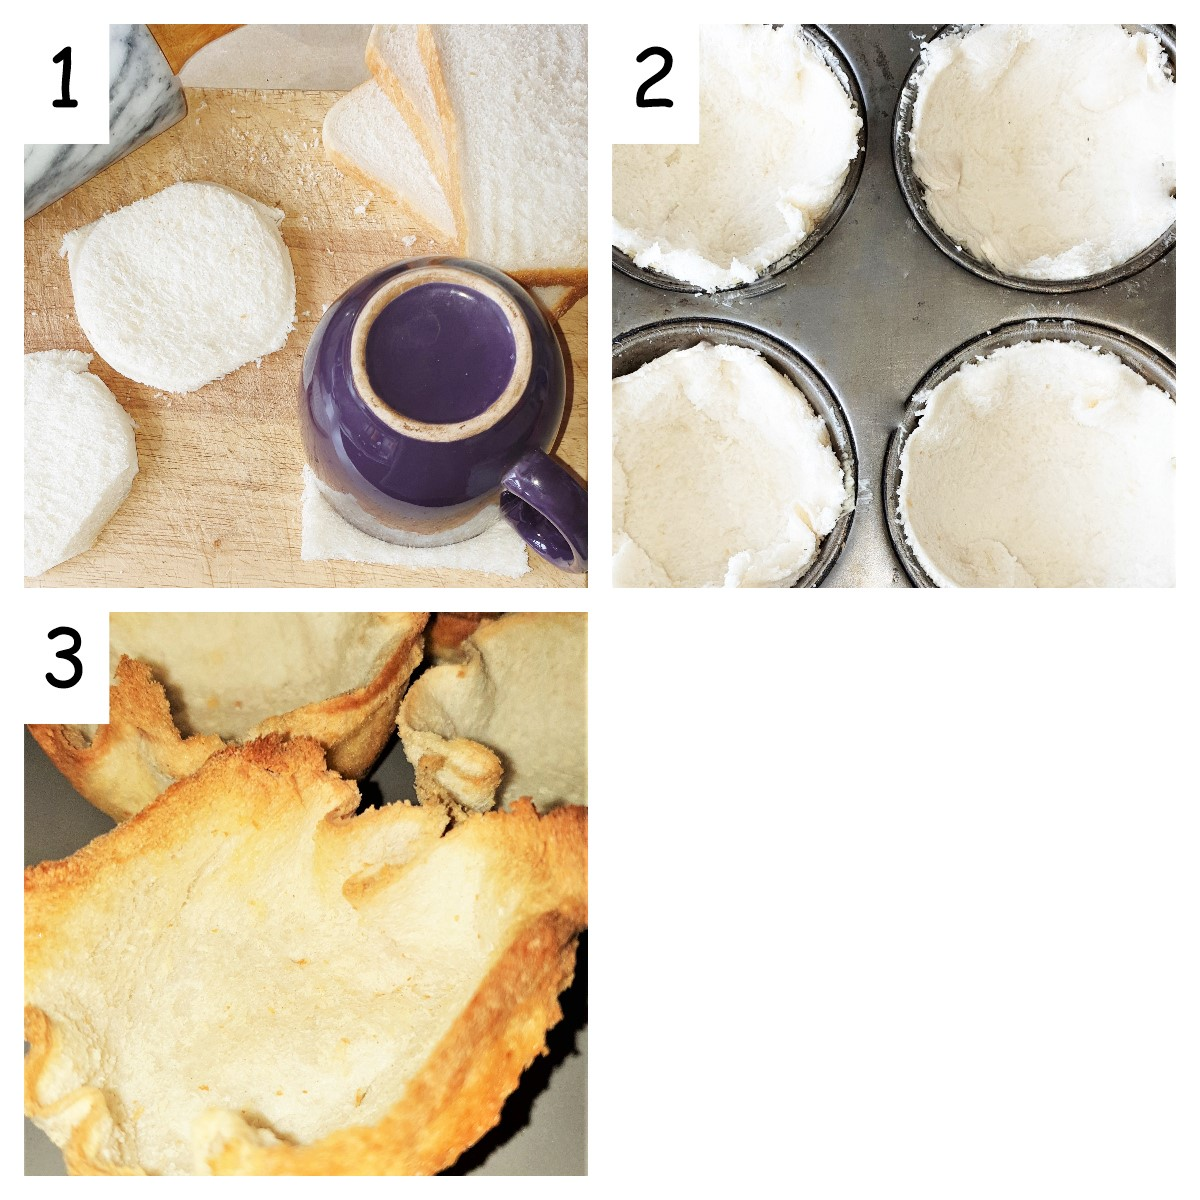 Steps for toasting breadcups